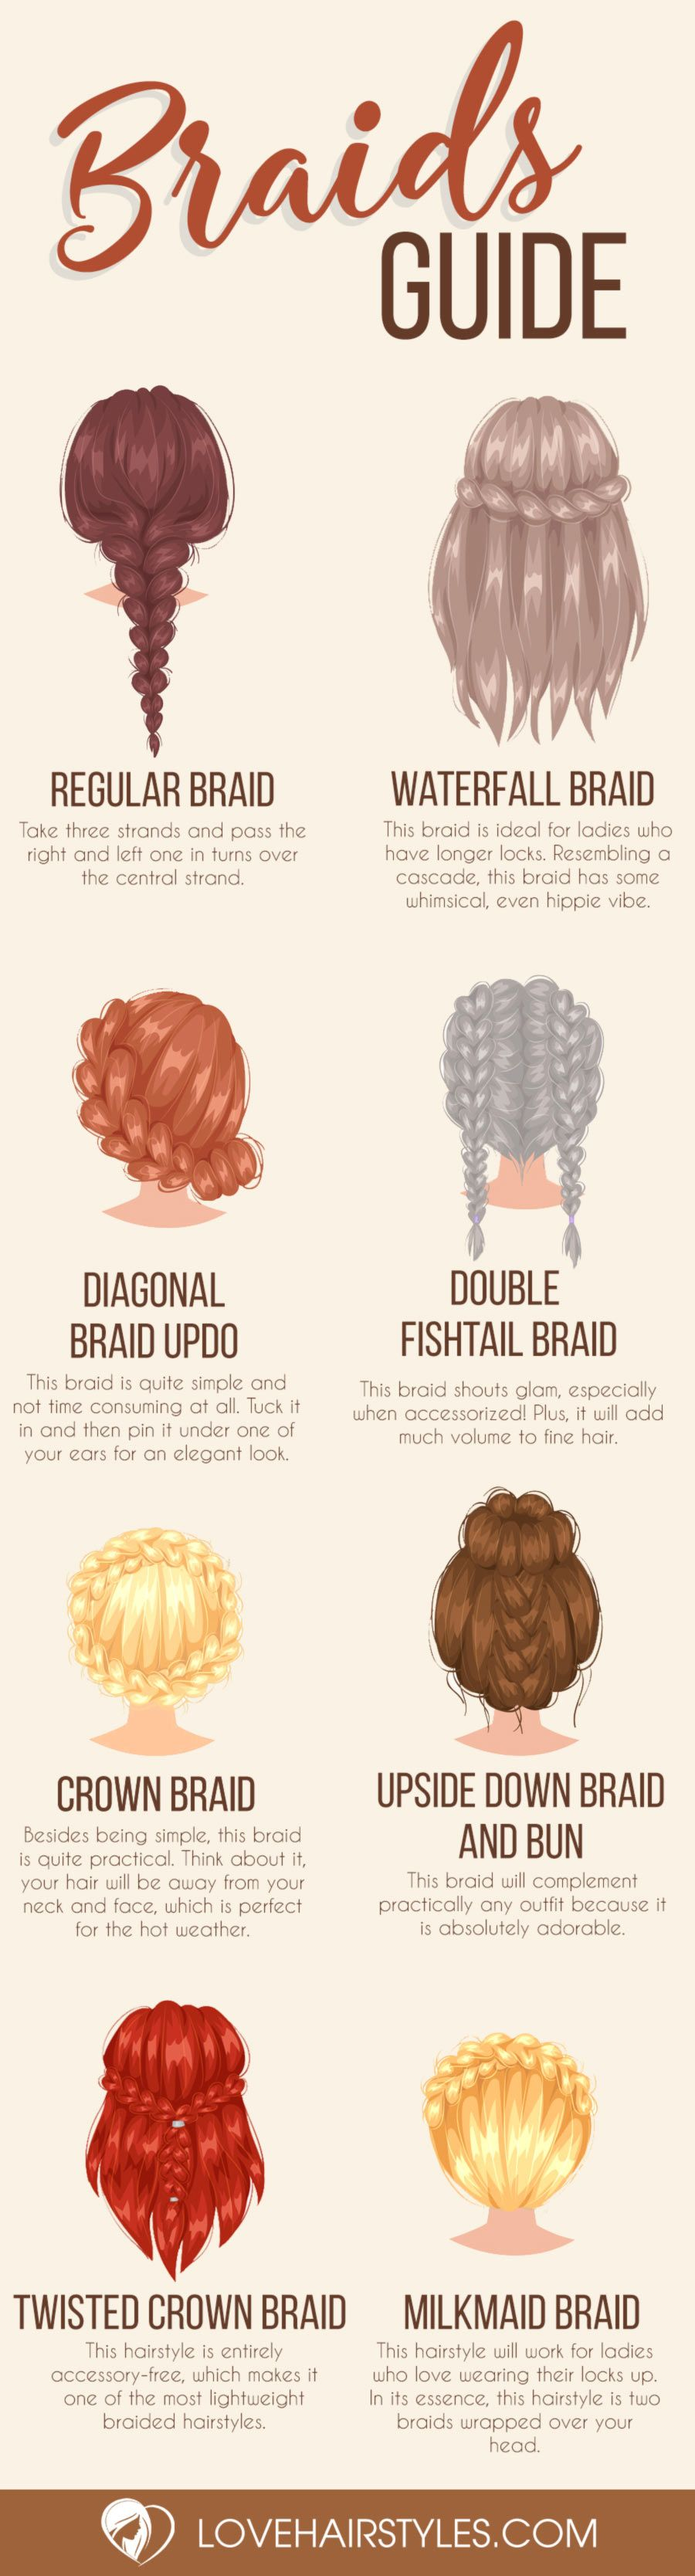 charming braided hairstyles pinterest plait hairstyles easy